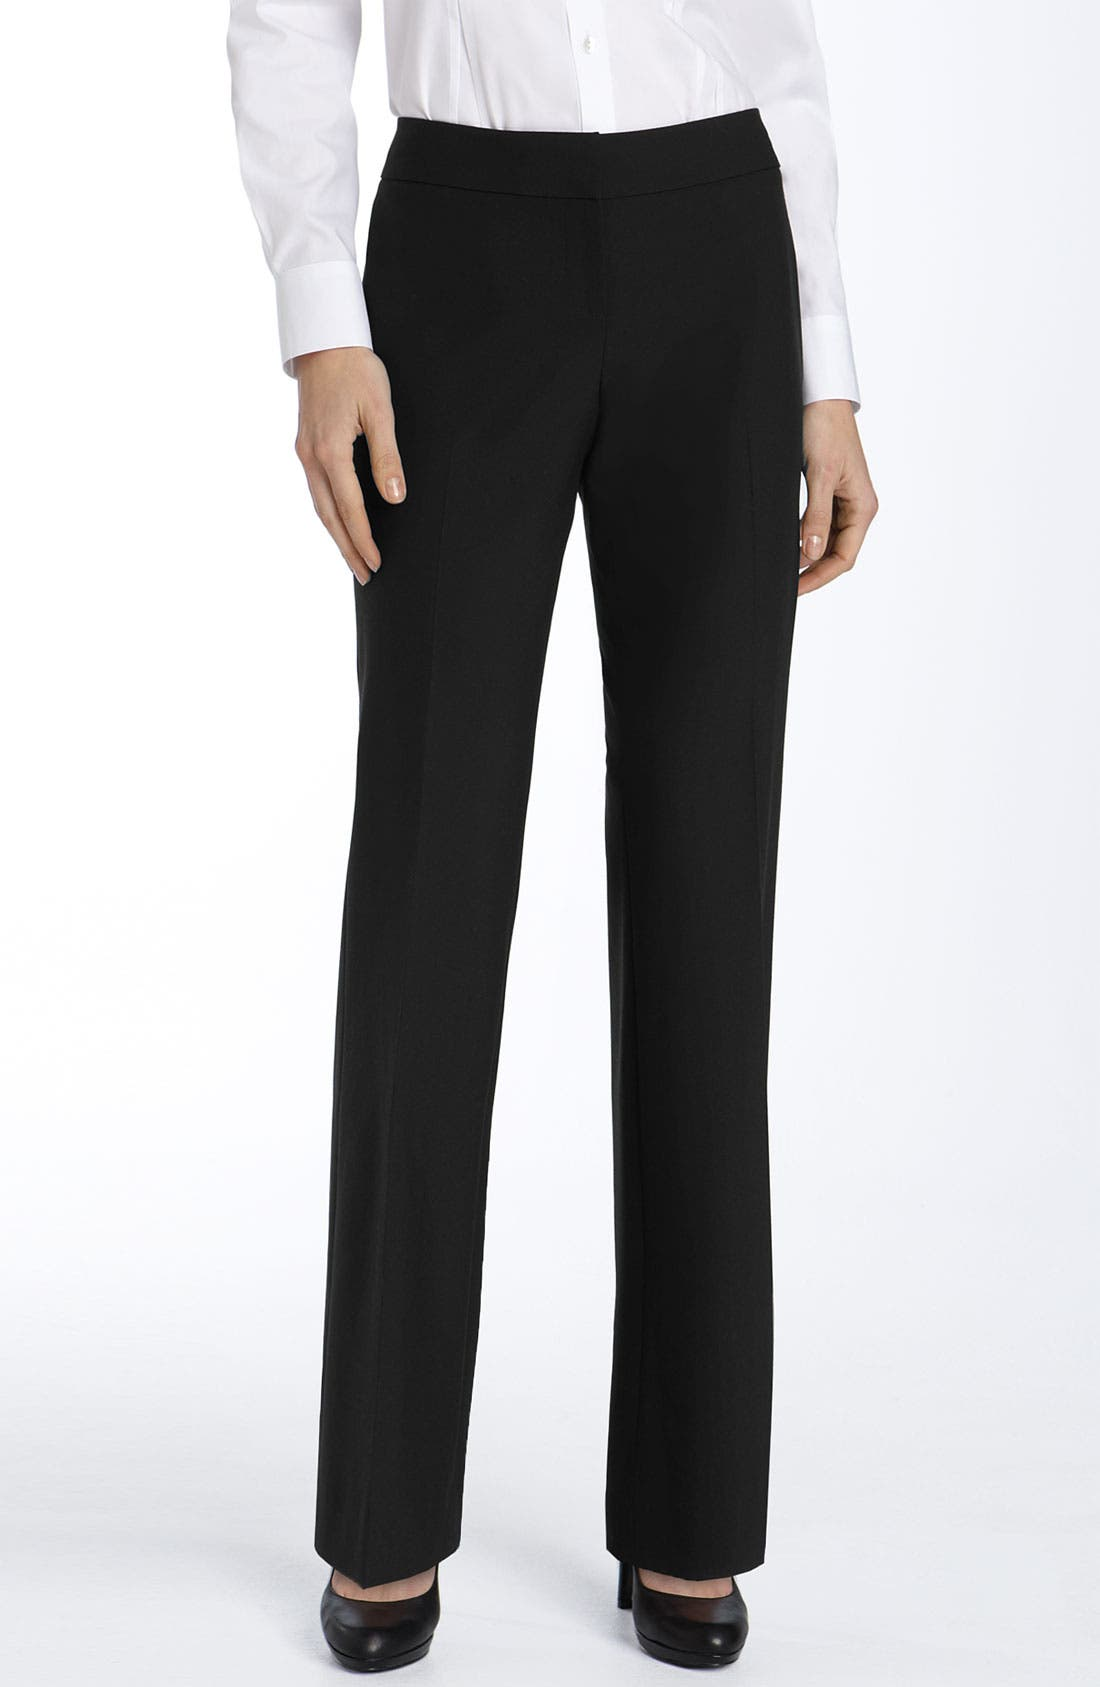 Alternate Image 1 Selected - Halogen® 'Taylor' Straight Leg Pants (Petite)